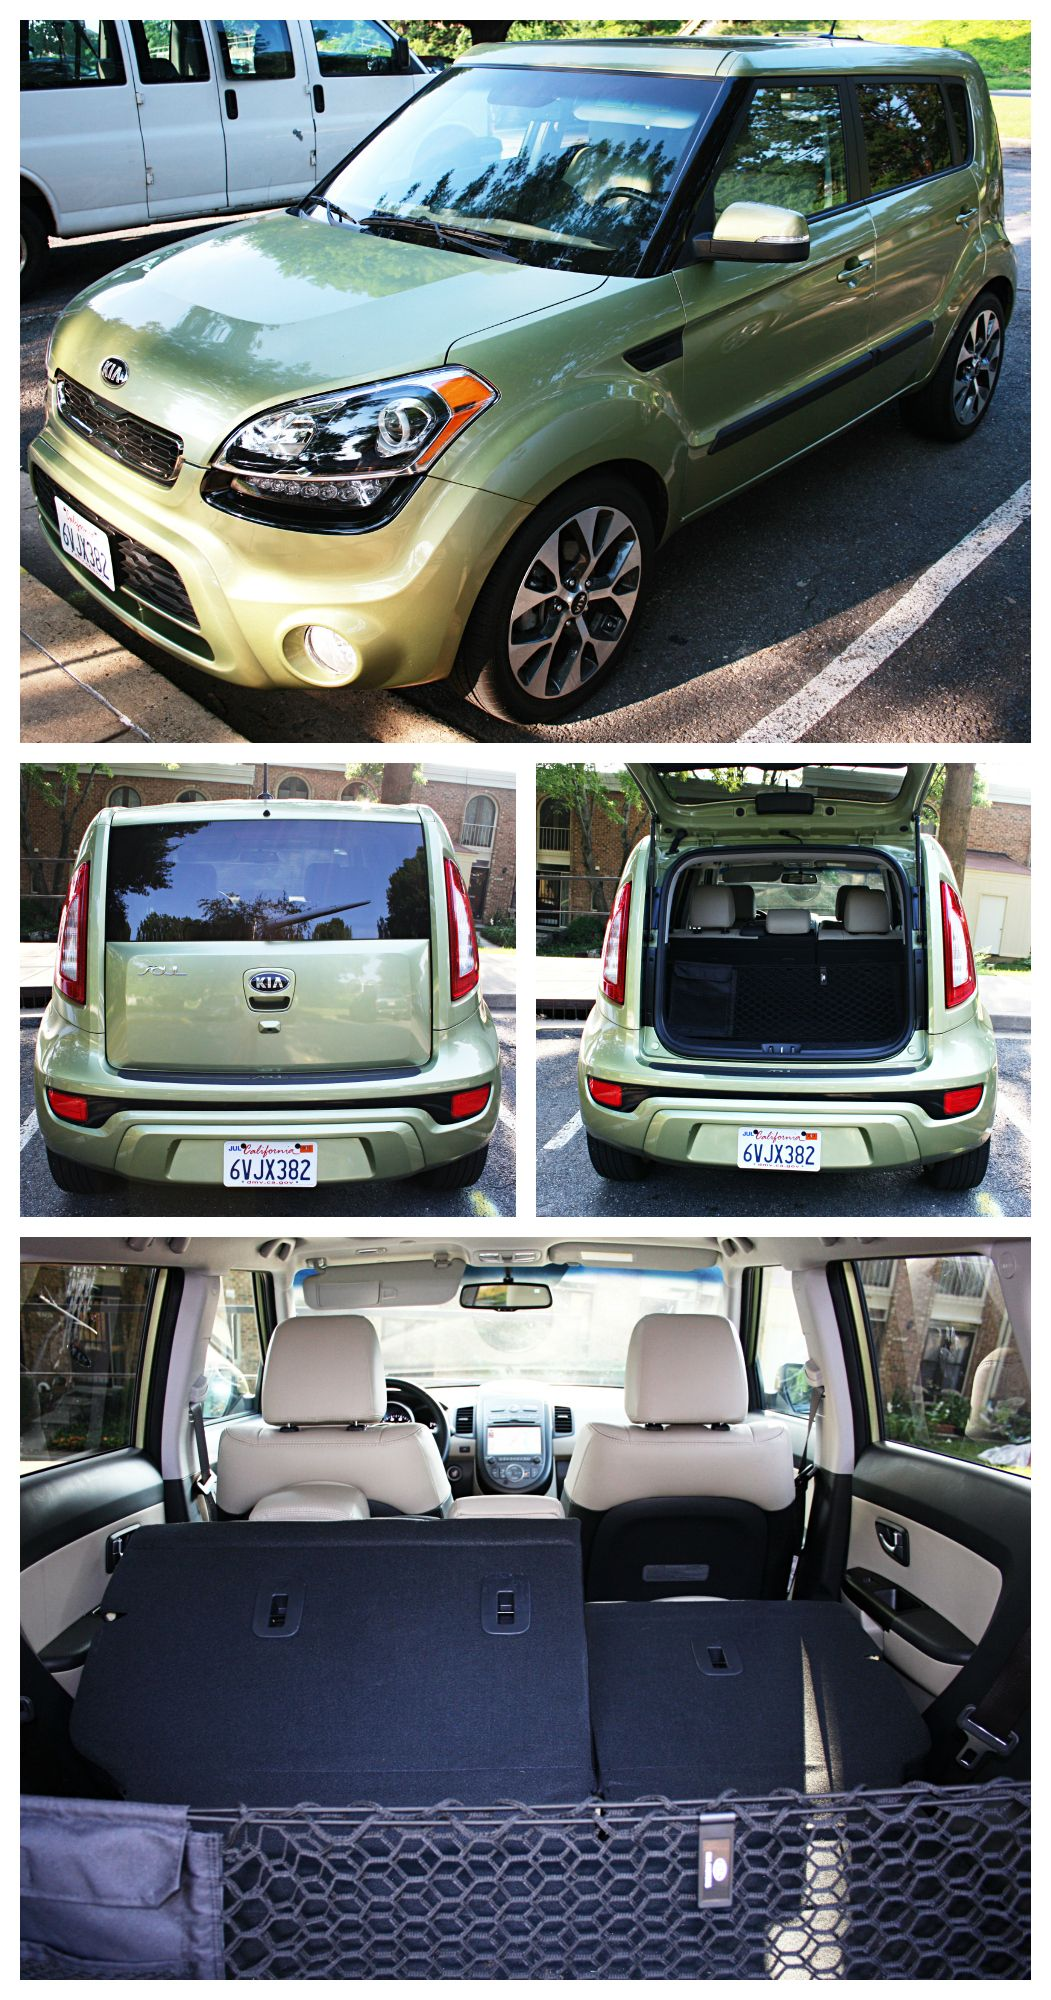 2013 Kia Soul   Get Up And Go With A Little Alien: Car Review